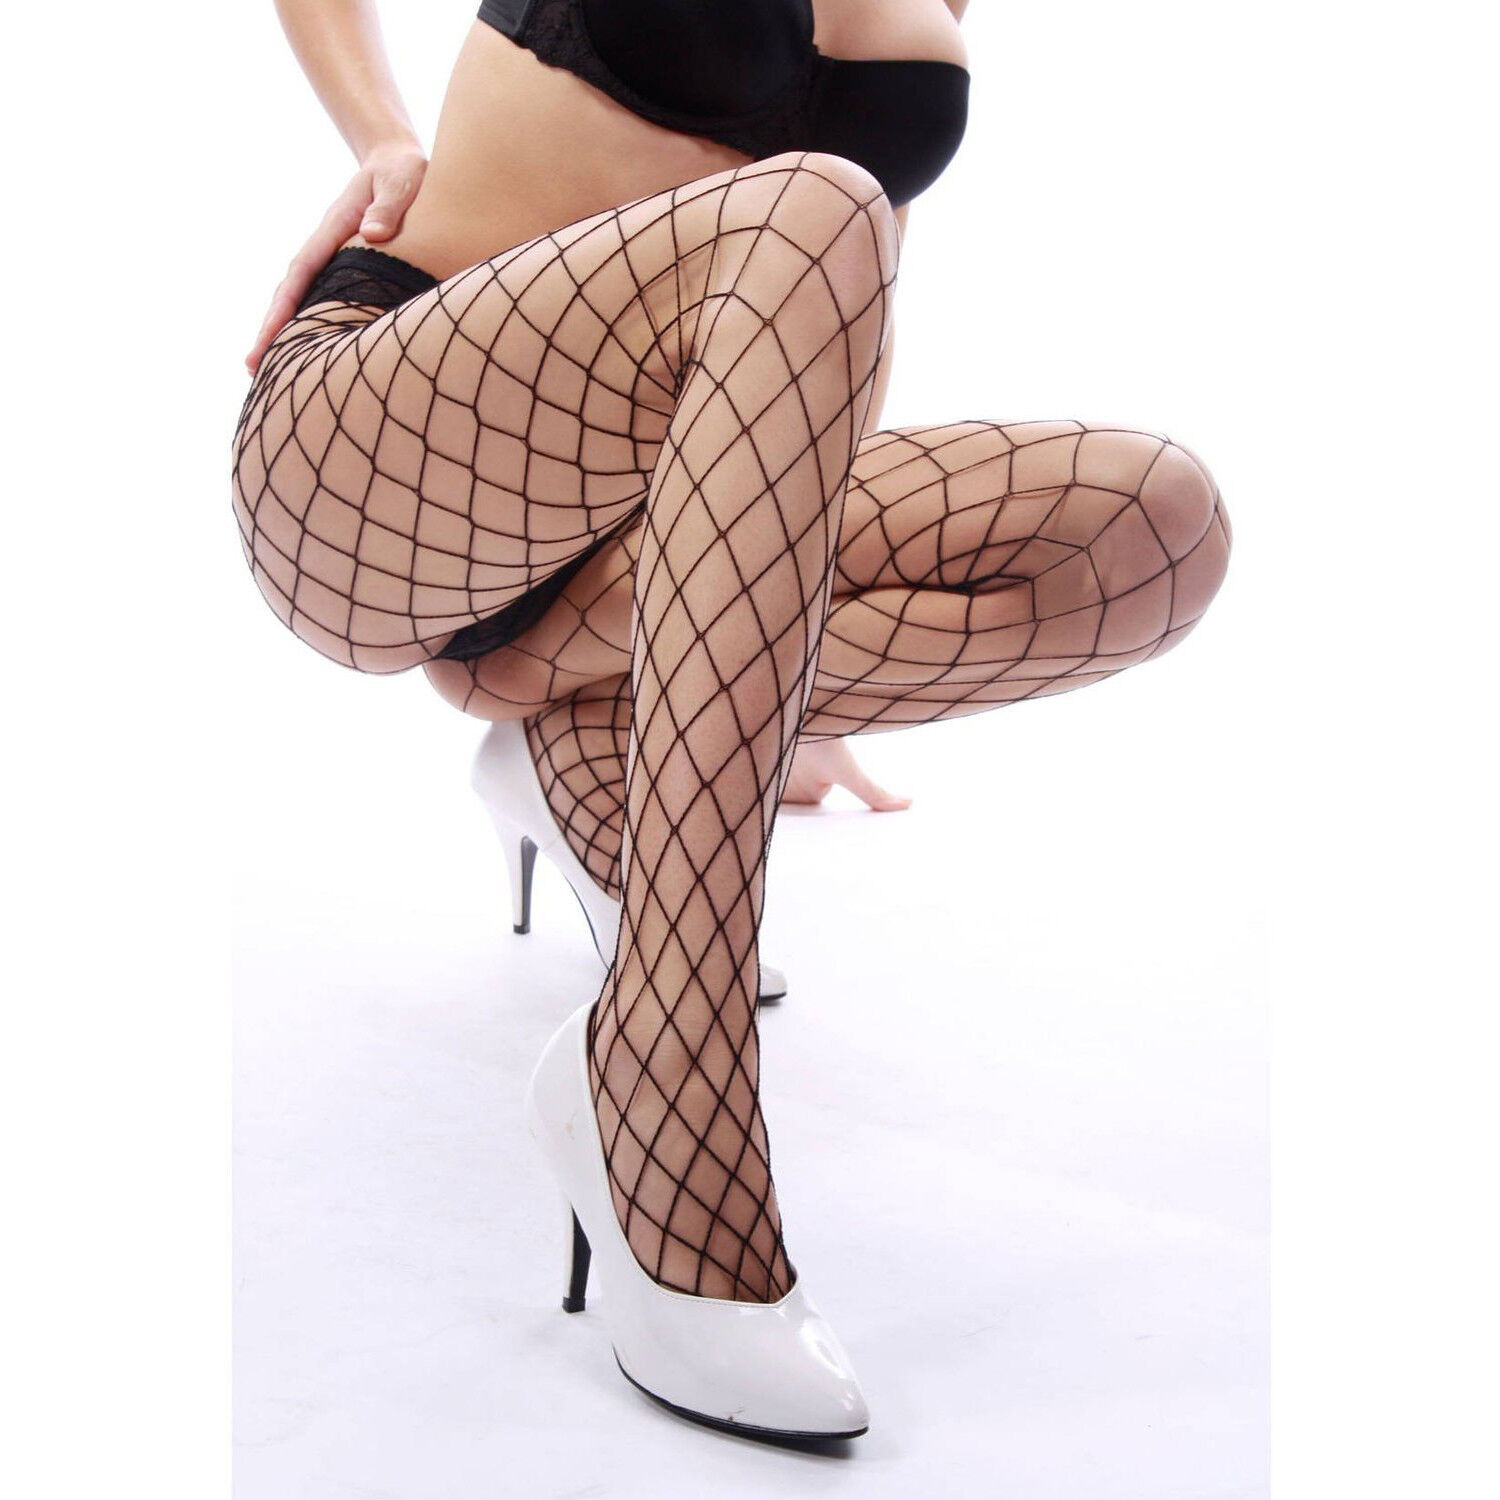 Women's Sexy Fishnet Pantyhose Sheer Lace Stocking Tights Sexy Panty Hose 2Pairs Clothing, Shoes & Accessories